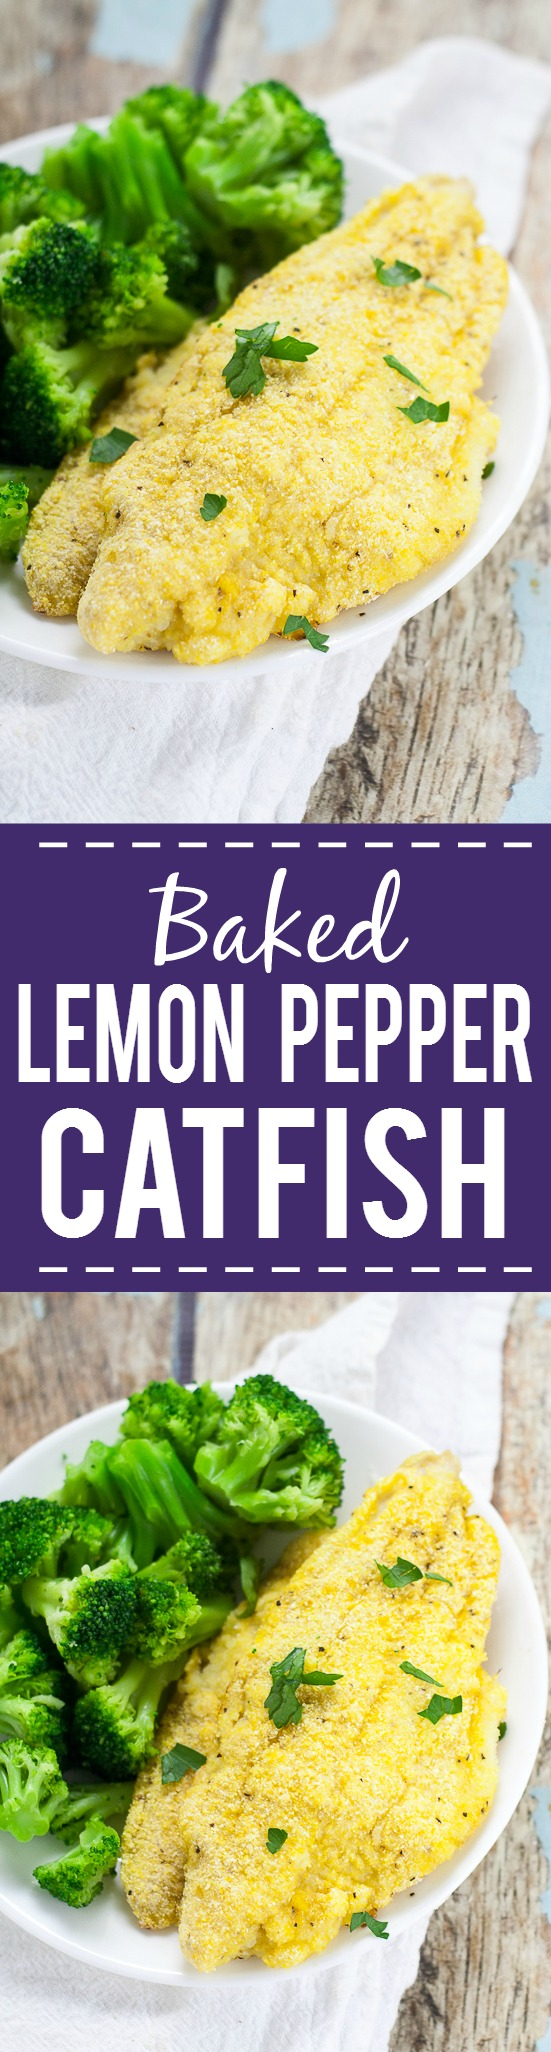 Lemon Pepper Baked Catfish Recipe -Crisp, zesty and baked right in the oven, this Lemon Pepper Baked Catfish recipe can be made in just 30 minutes with 5 ingredients! Quick and easy dinner recipe. Healthy too!